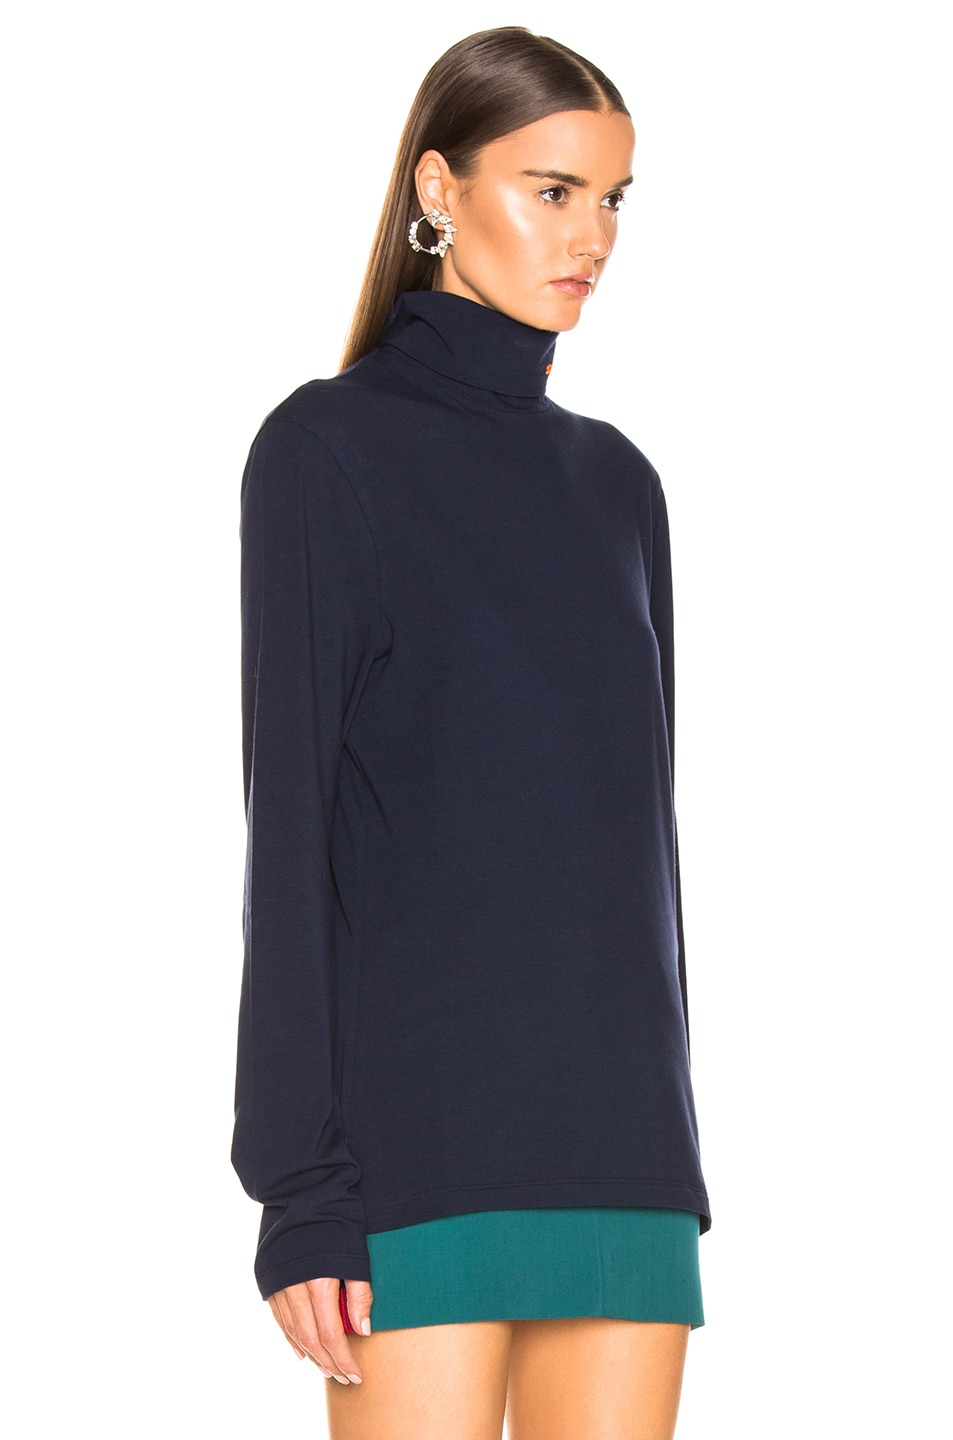 Image 2 of CALVIN KLEIN 205W39NYC Stretch Jersey in Marine